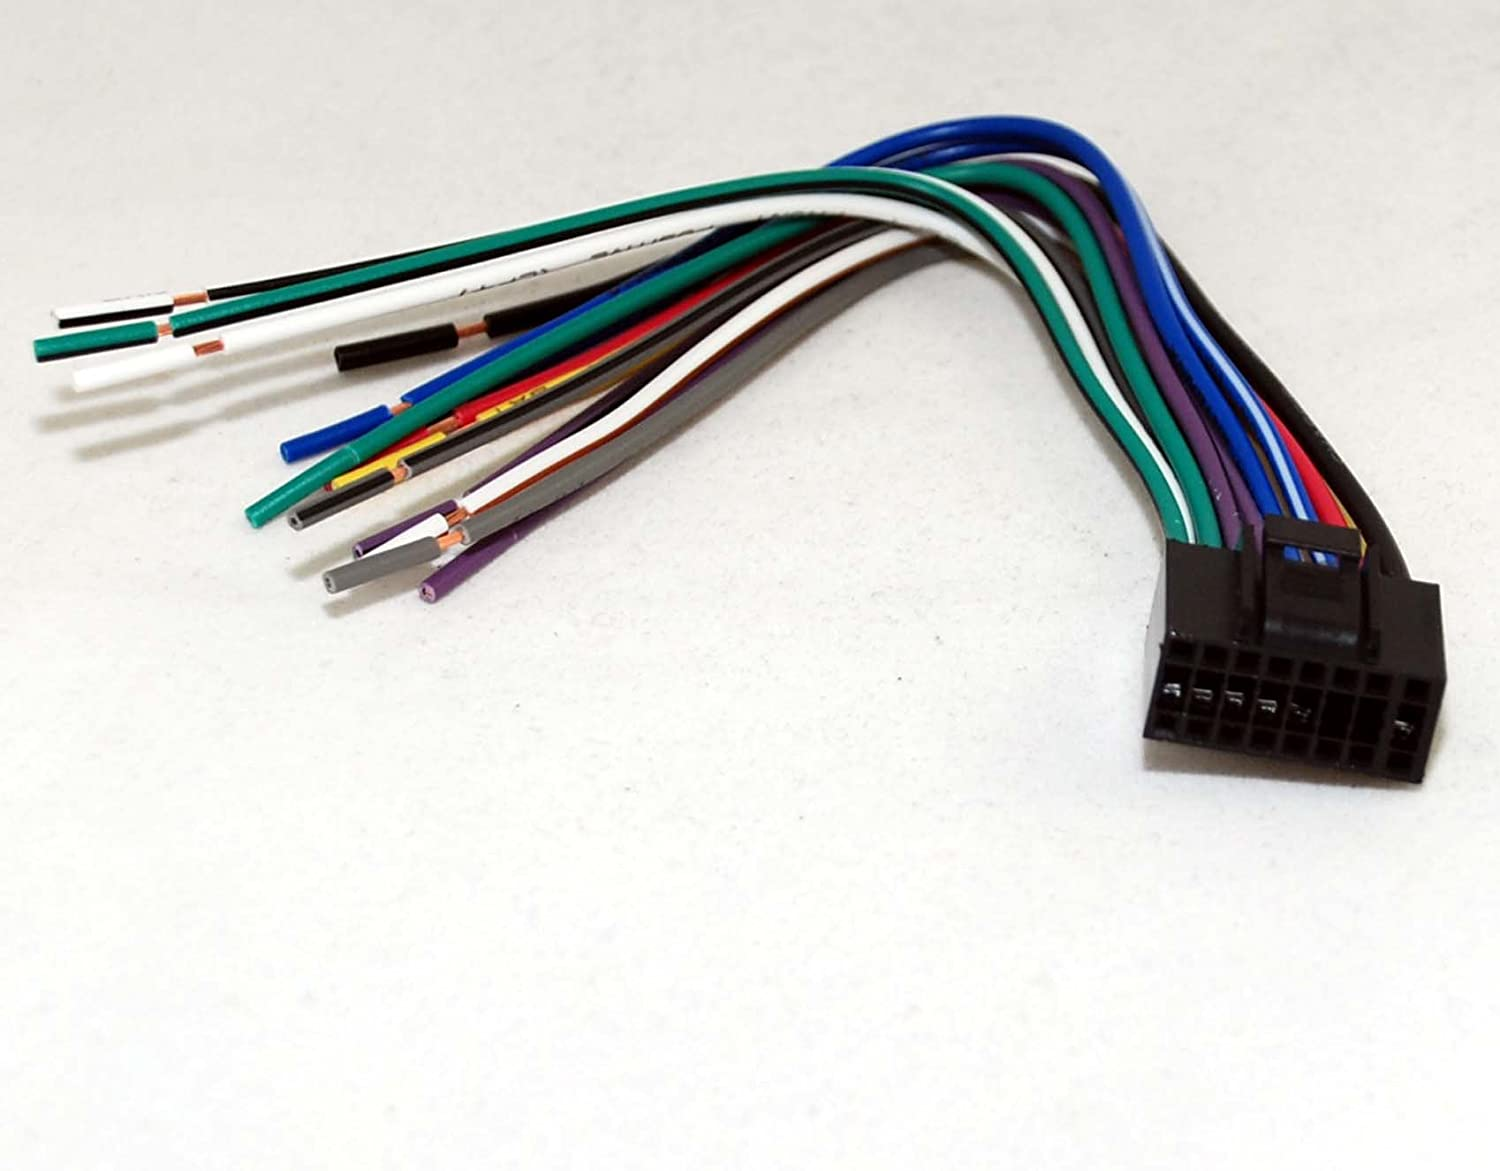 61Rzeblbo0L._SL1500_ amazon com xtenzi harness for dual 16 pin wire harness xdvd8181 dual 12 pin wire harness at mifinder.co